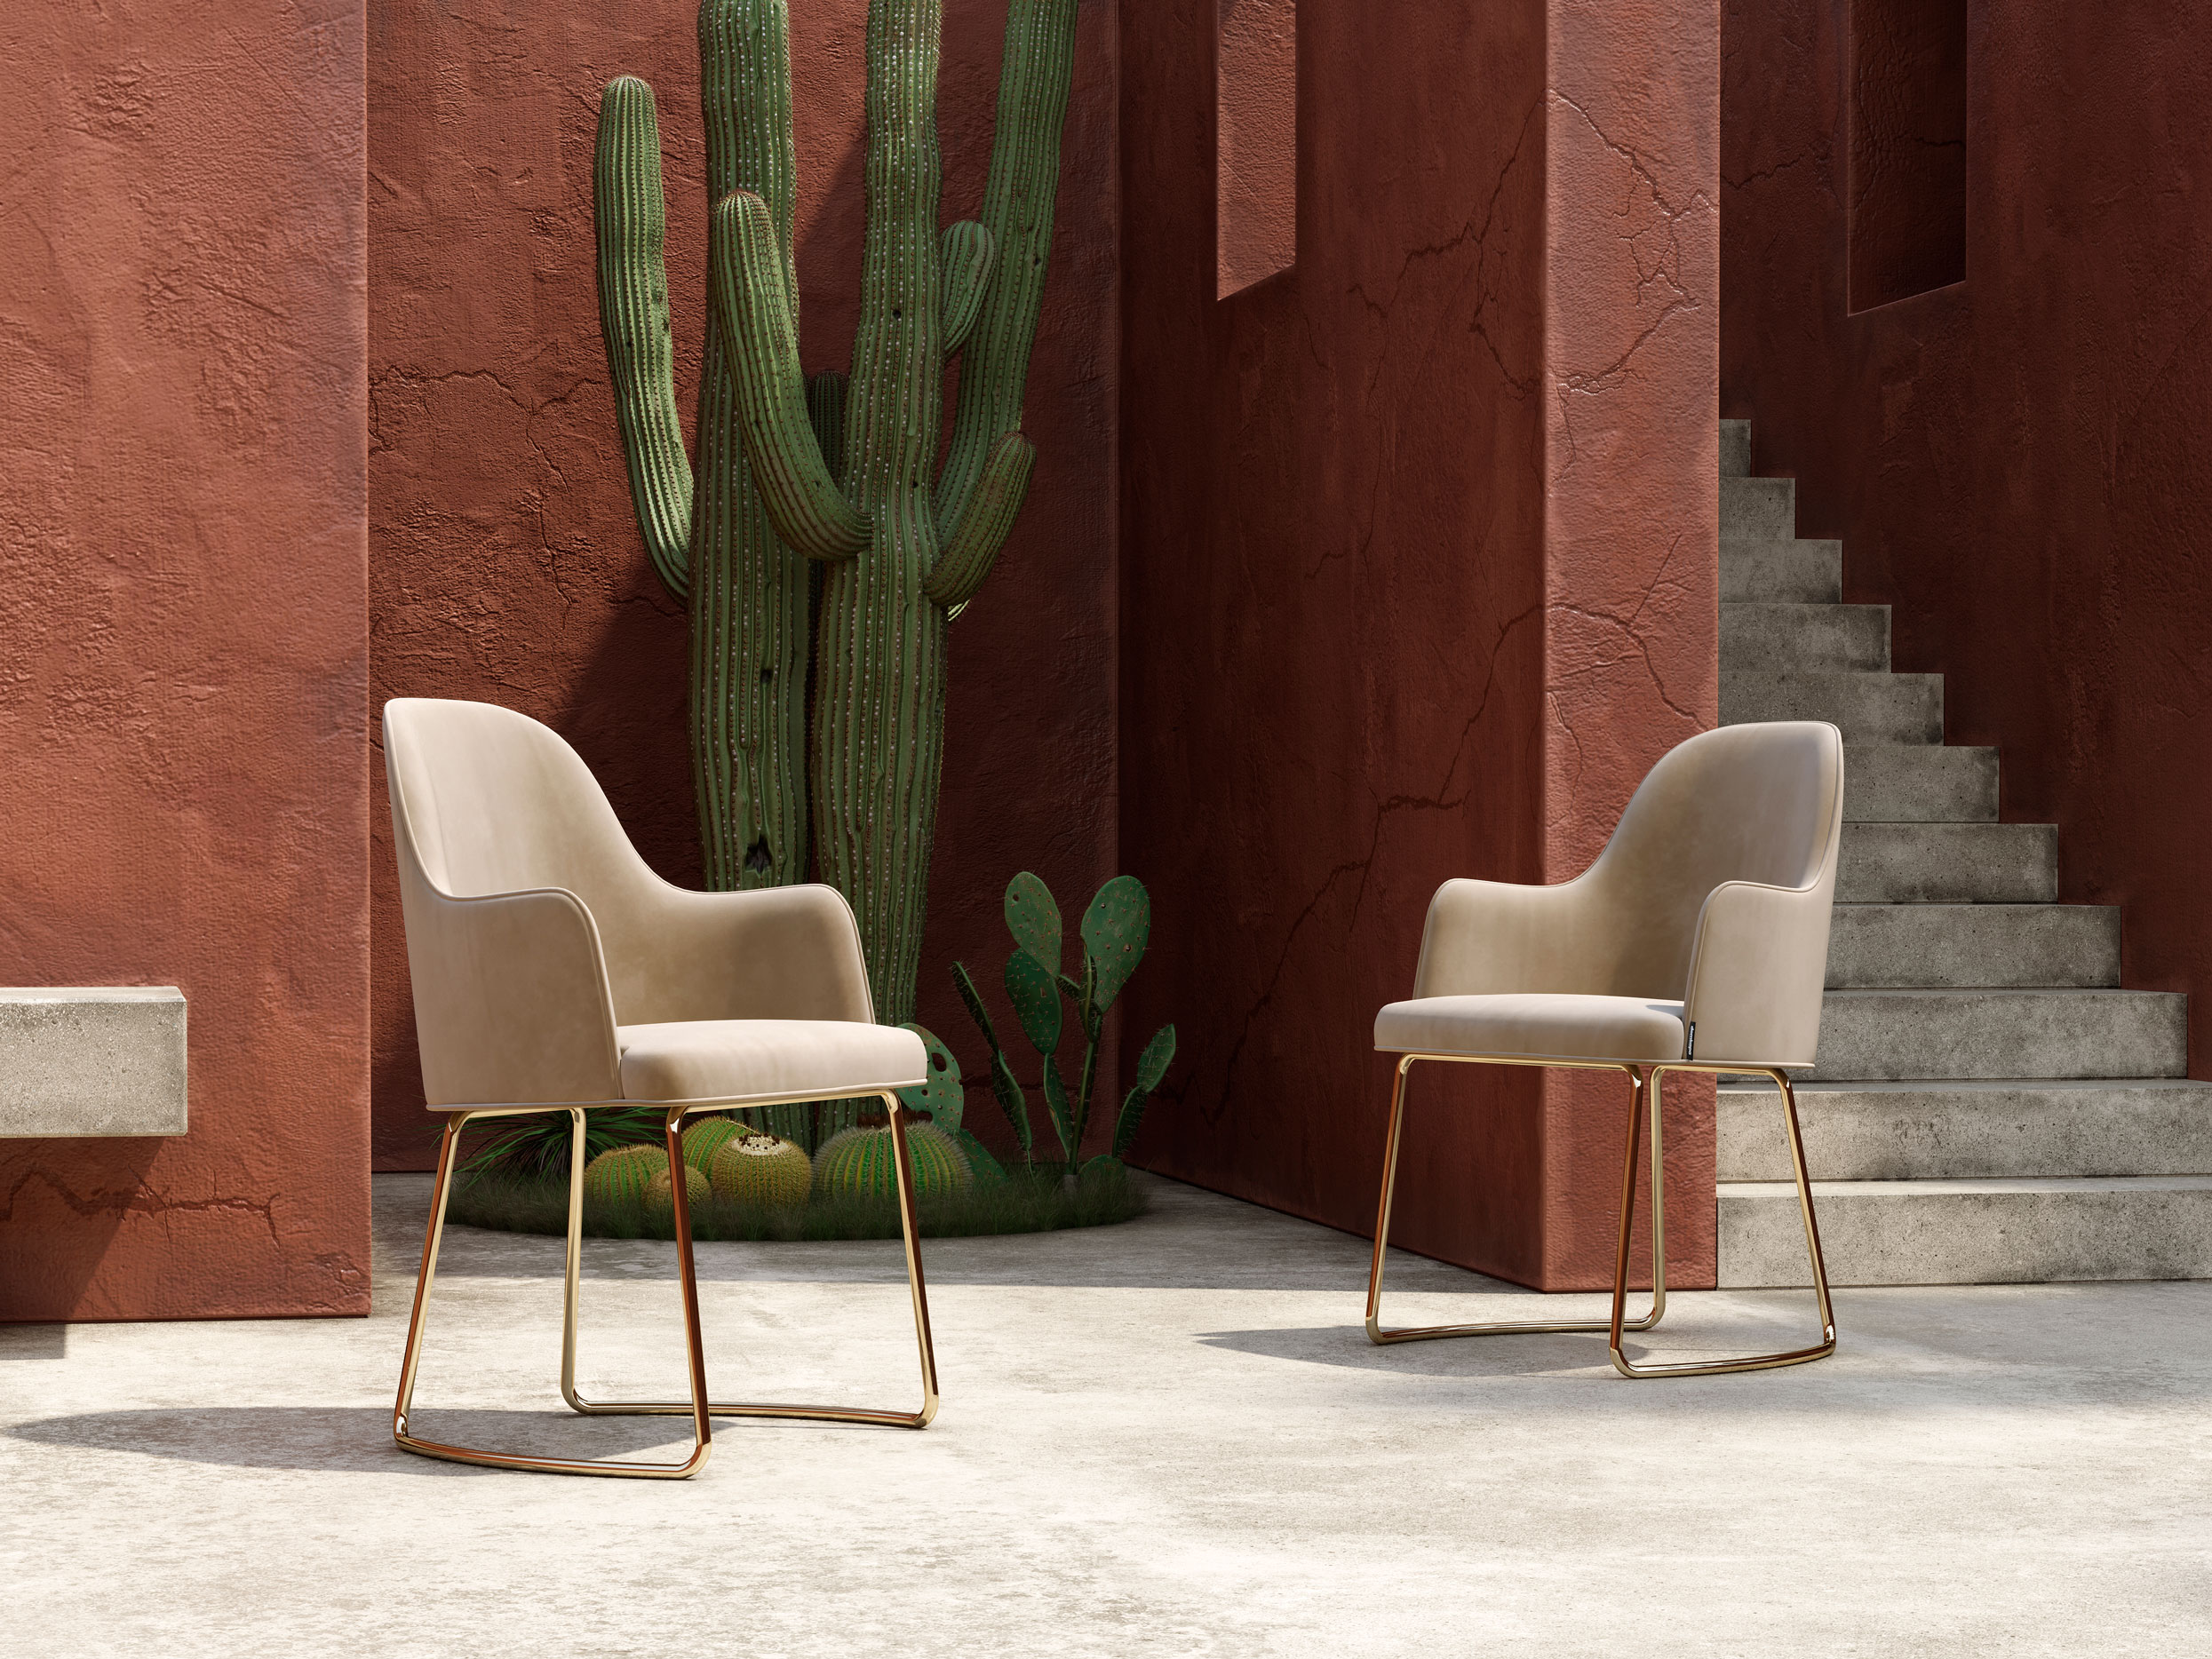 ruah-dining-chair-domkapa-new-collection-2021-dining-room-decor-3